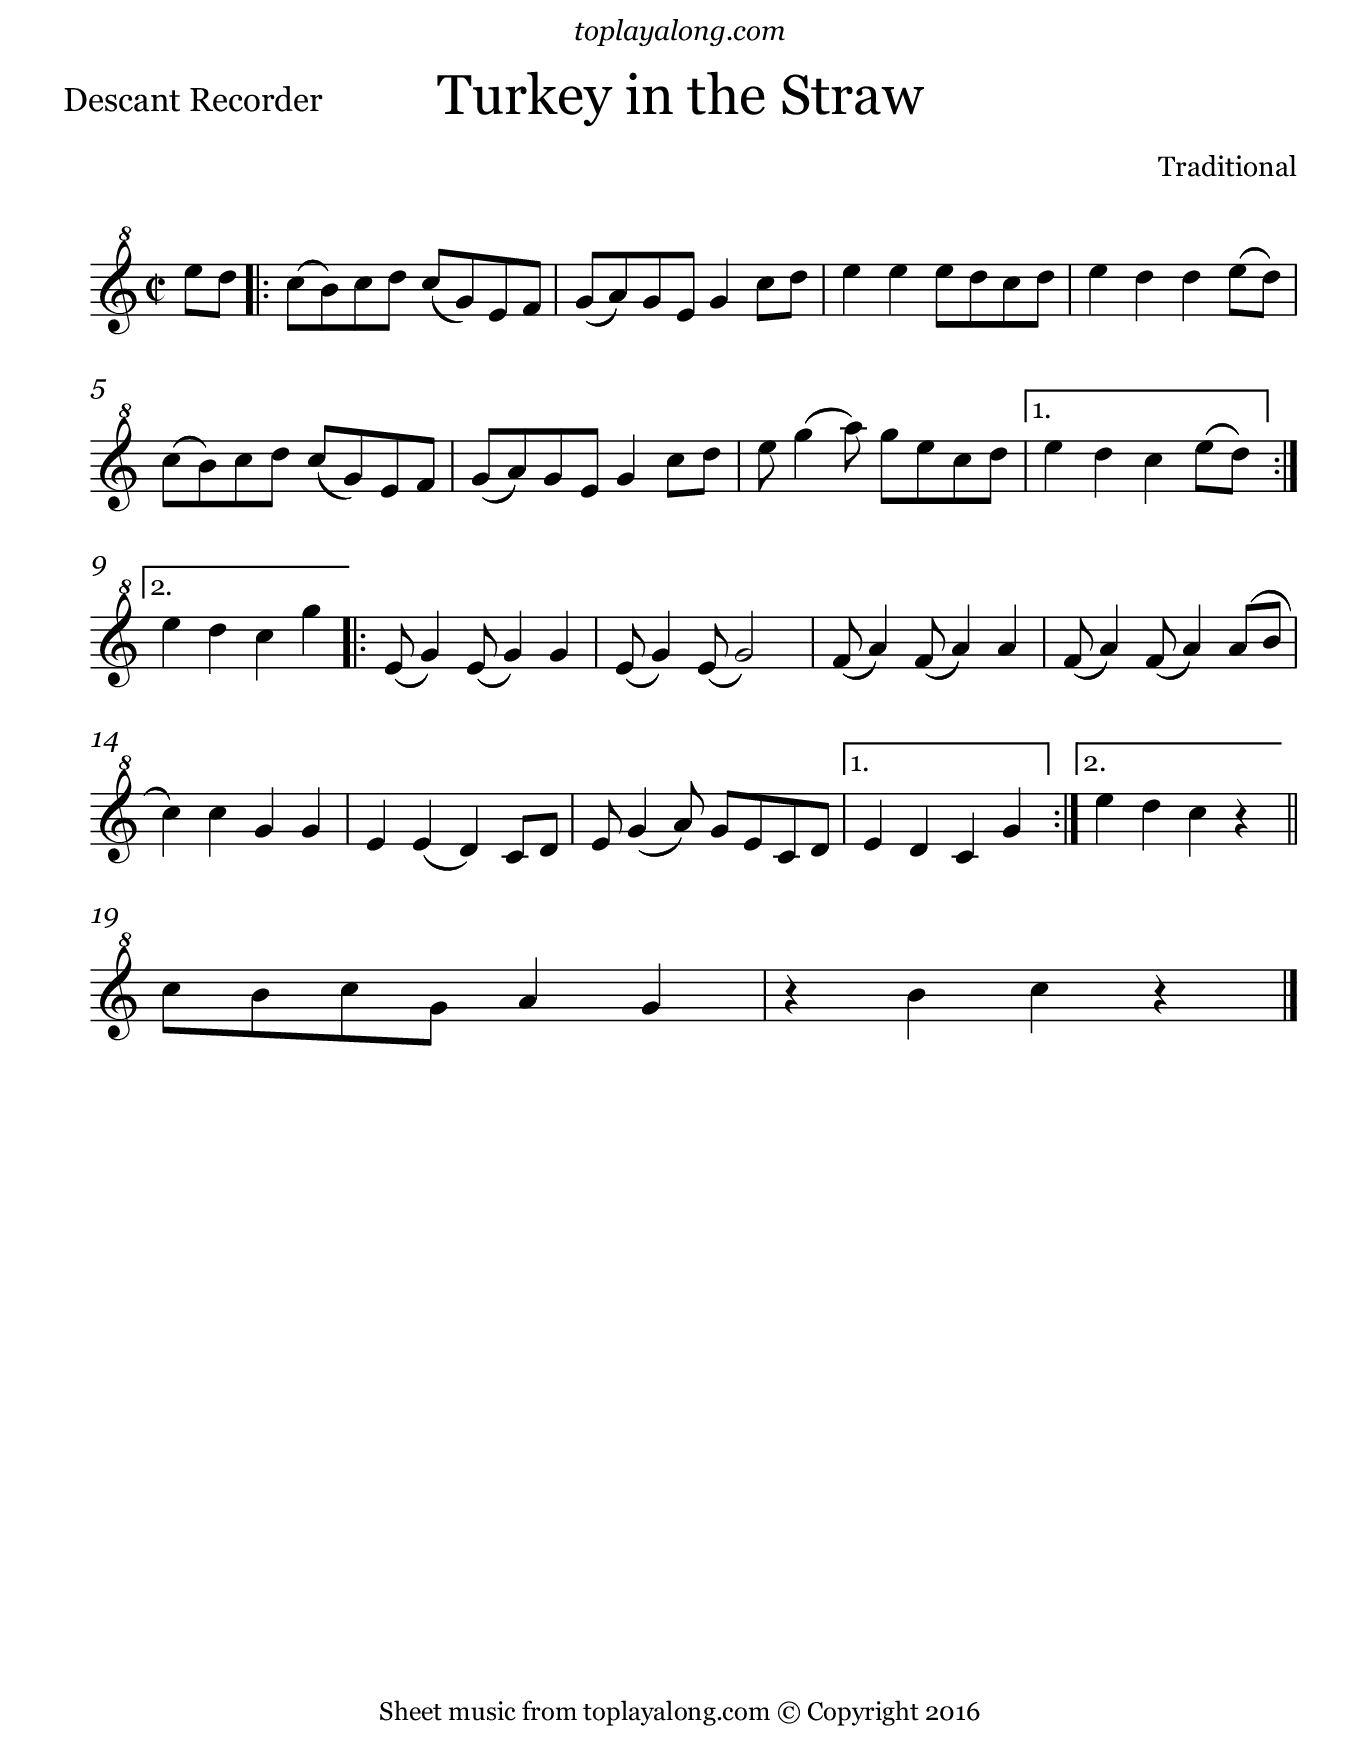 Turkey in the Straw. Sheet music for Recorder, page 1.